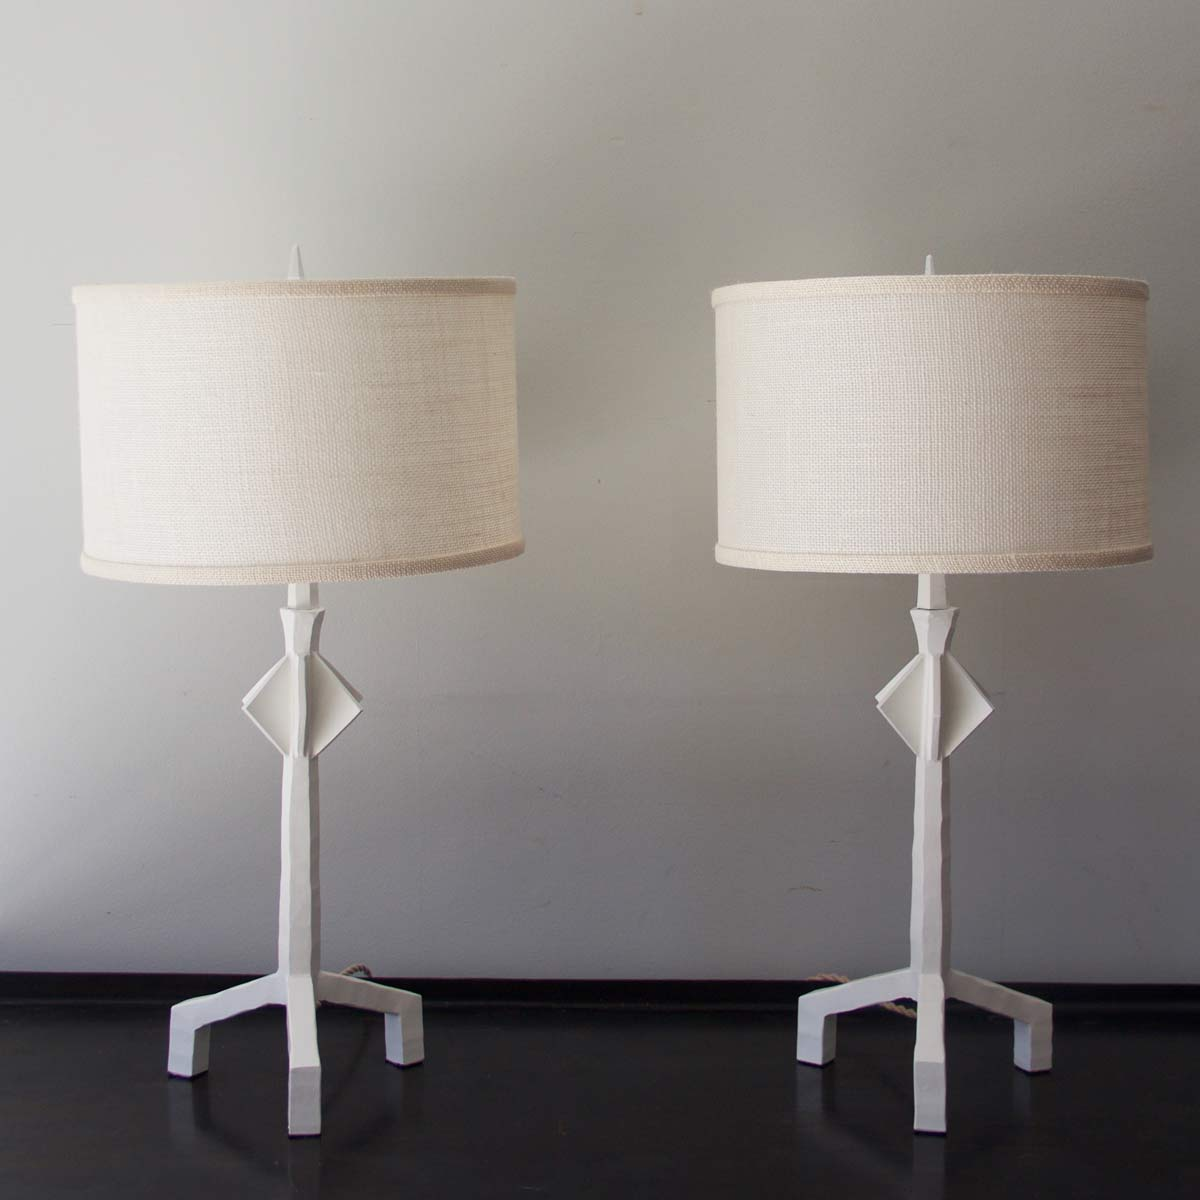 Gesso-White Painted Hand Forged Steel Etoile Style Table Lamps, each $950